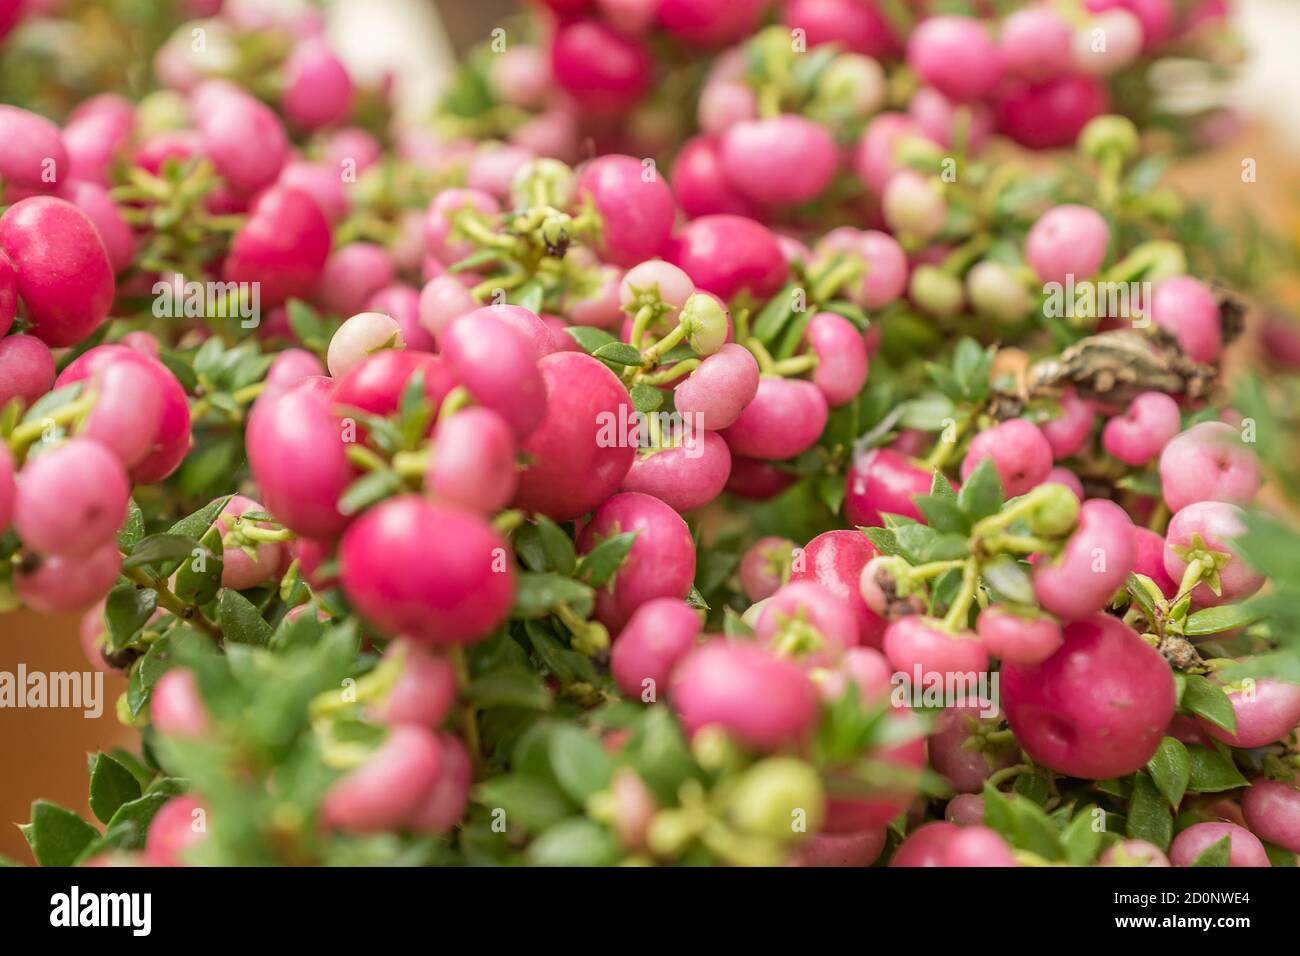 Pernettya Berries.Pernettya Mucronata Evergreen Shrub With Pink Berries Autumn Plant In Clay Flower Pot Stock Photo Alamy